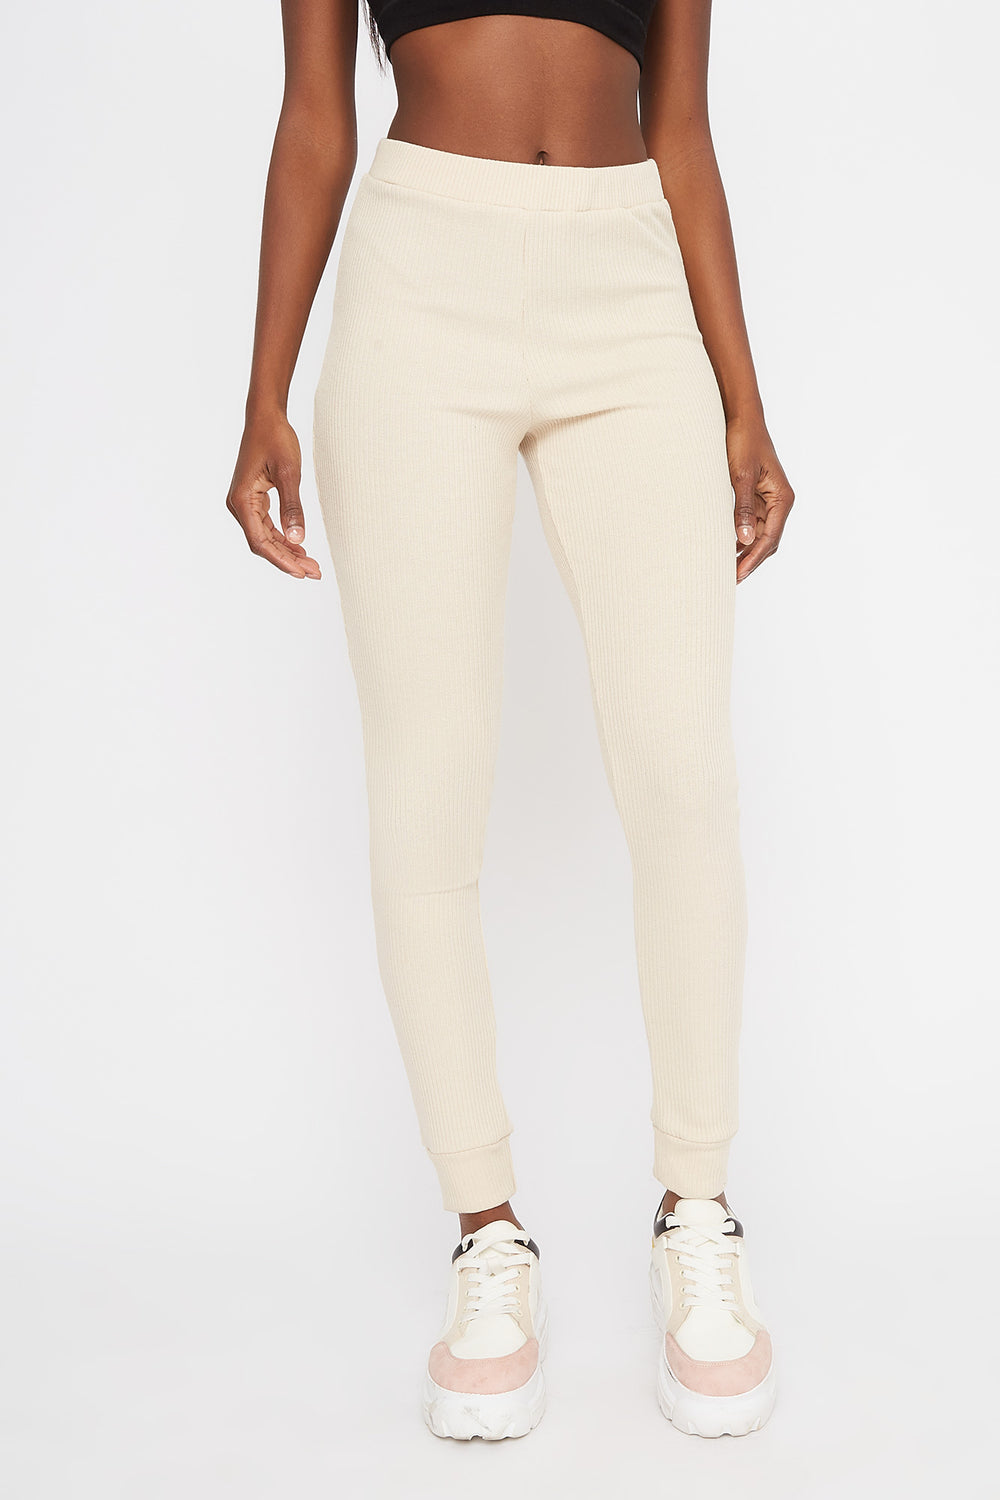 Ribbed High-Rise Pull-On Legging Oatmeal